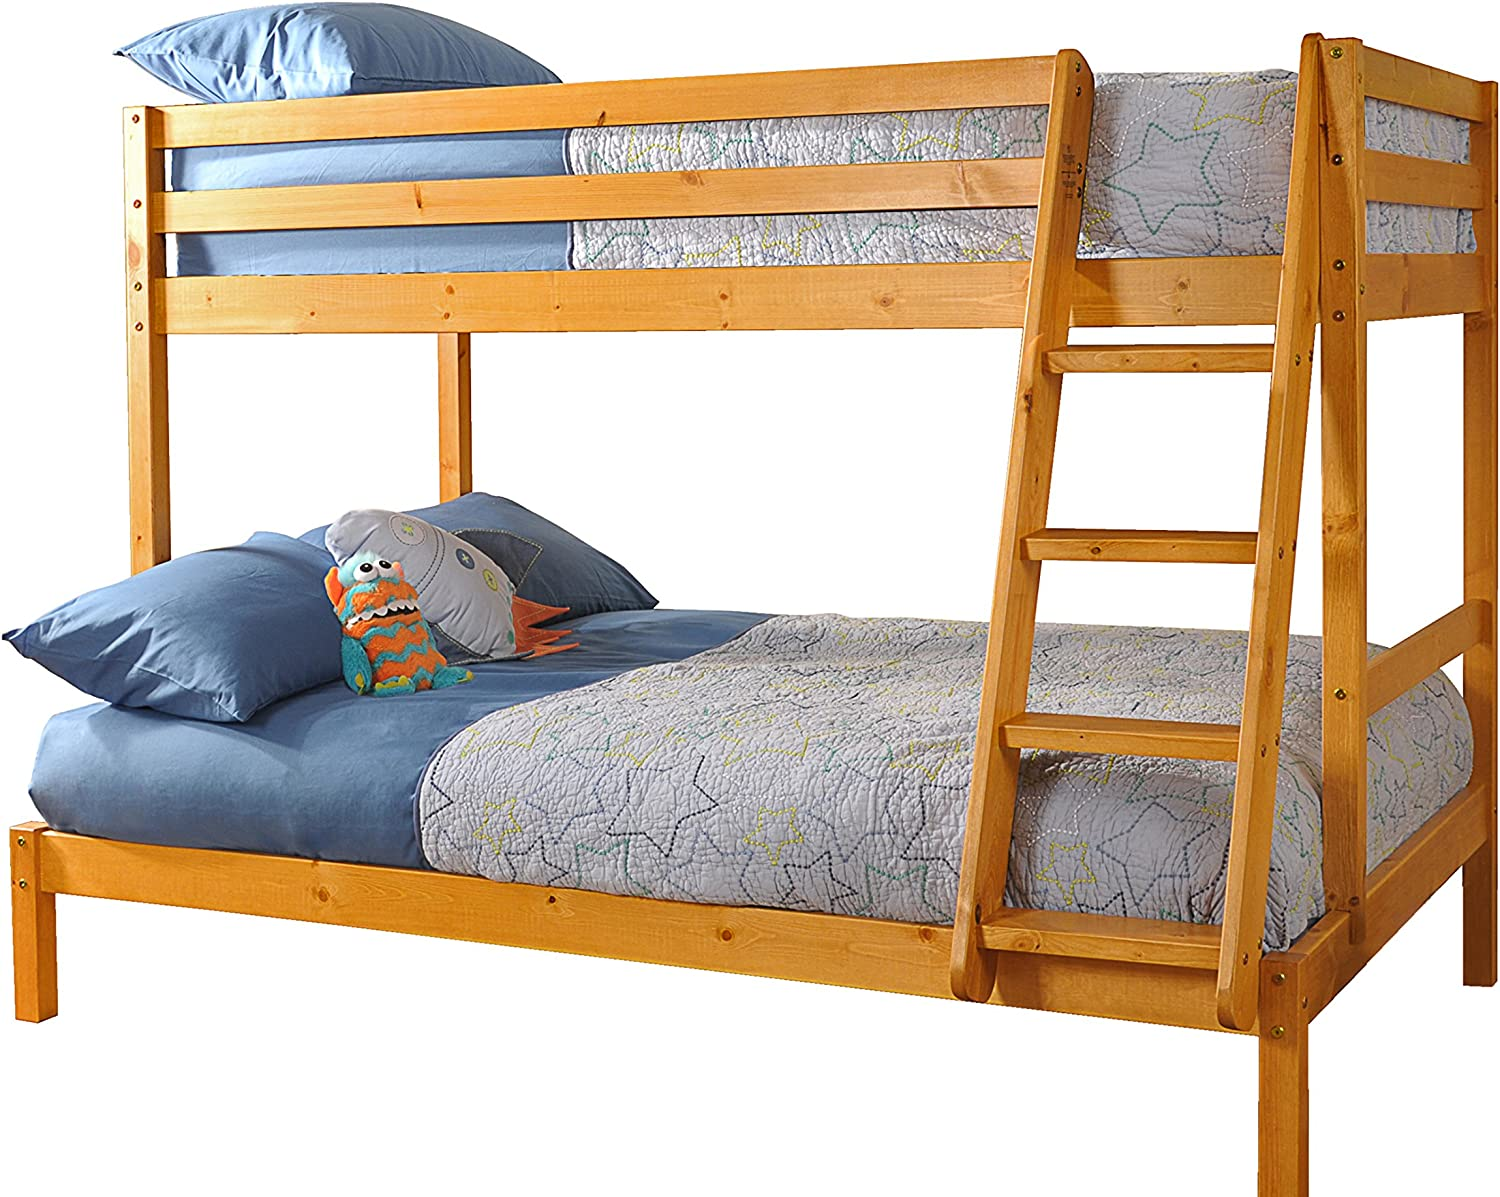 Triple Wooden Pine Bunk Bed 3ft 4ft In Caramel Finish With 2 Mattresses Amazon Co Uk Kitchen Home